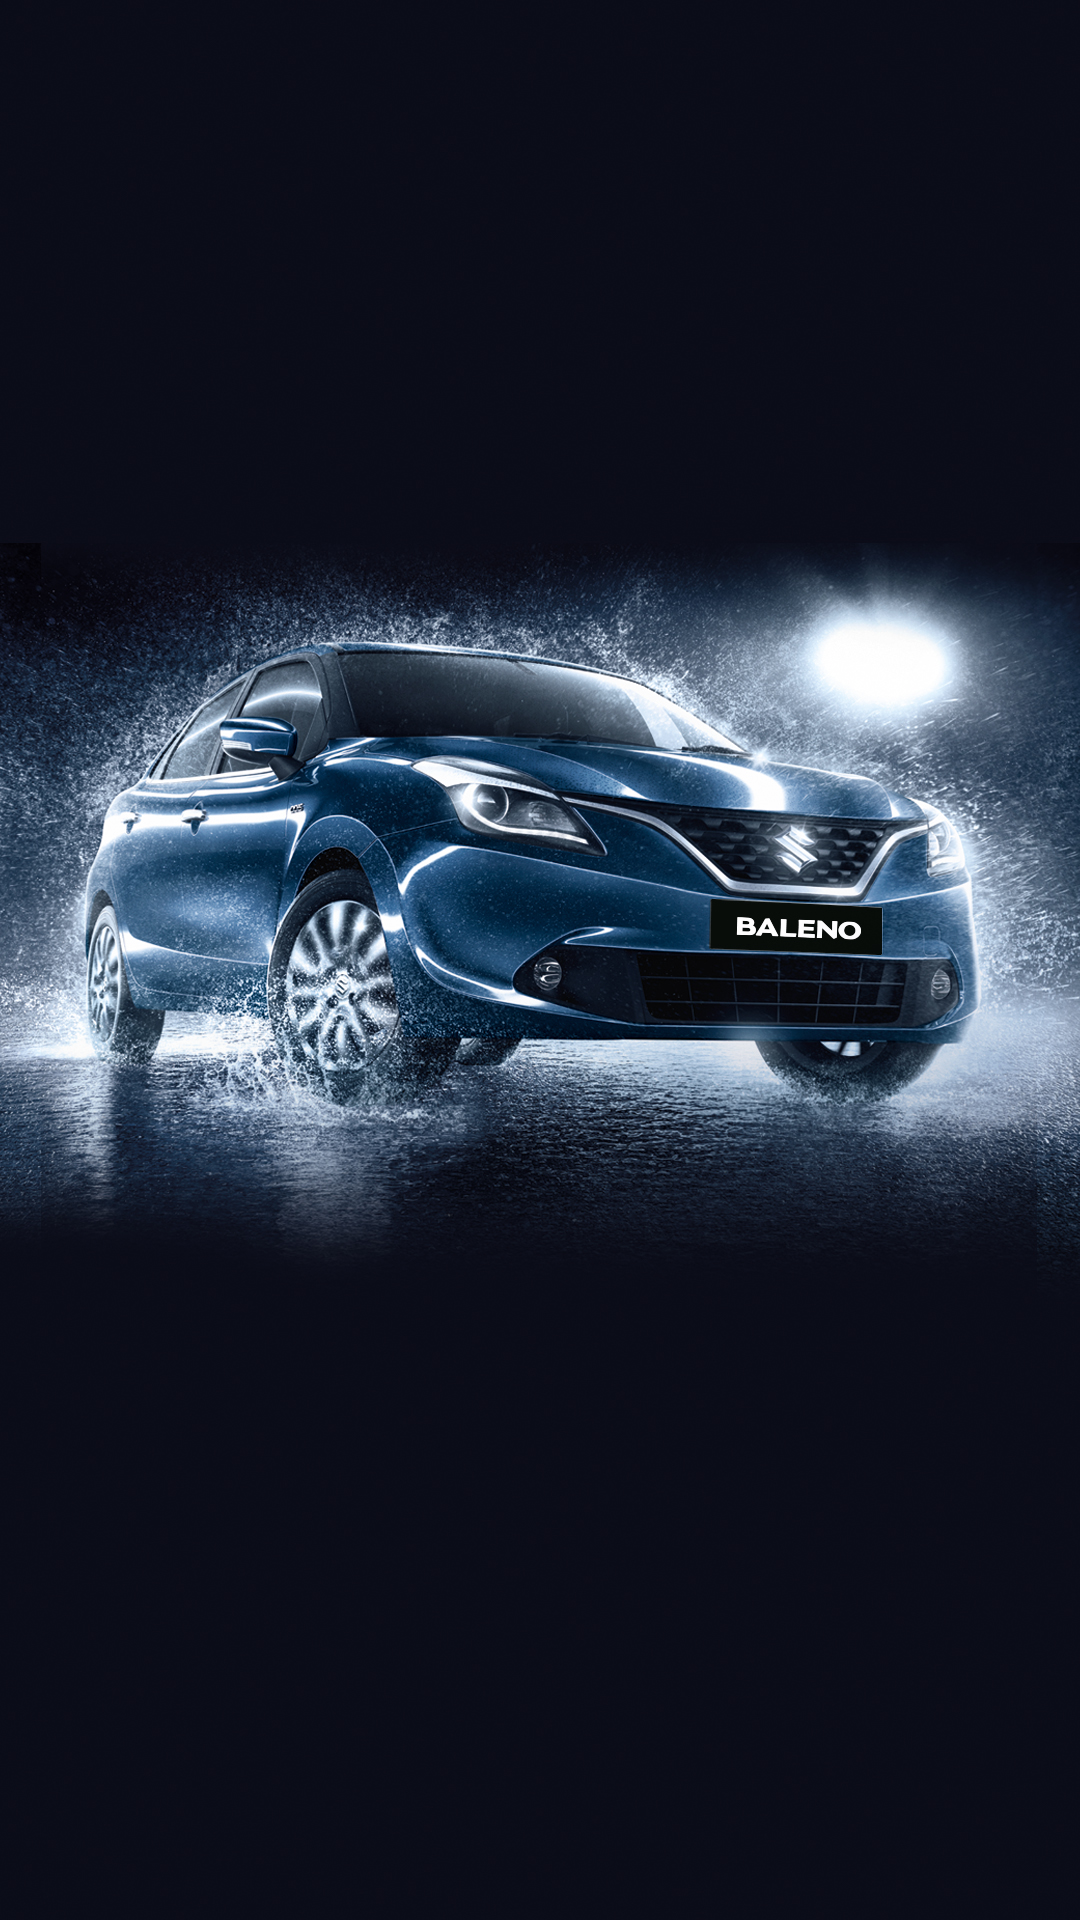 Baleno Images Wallpapers Photos